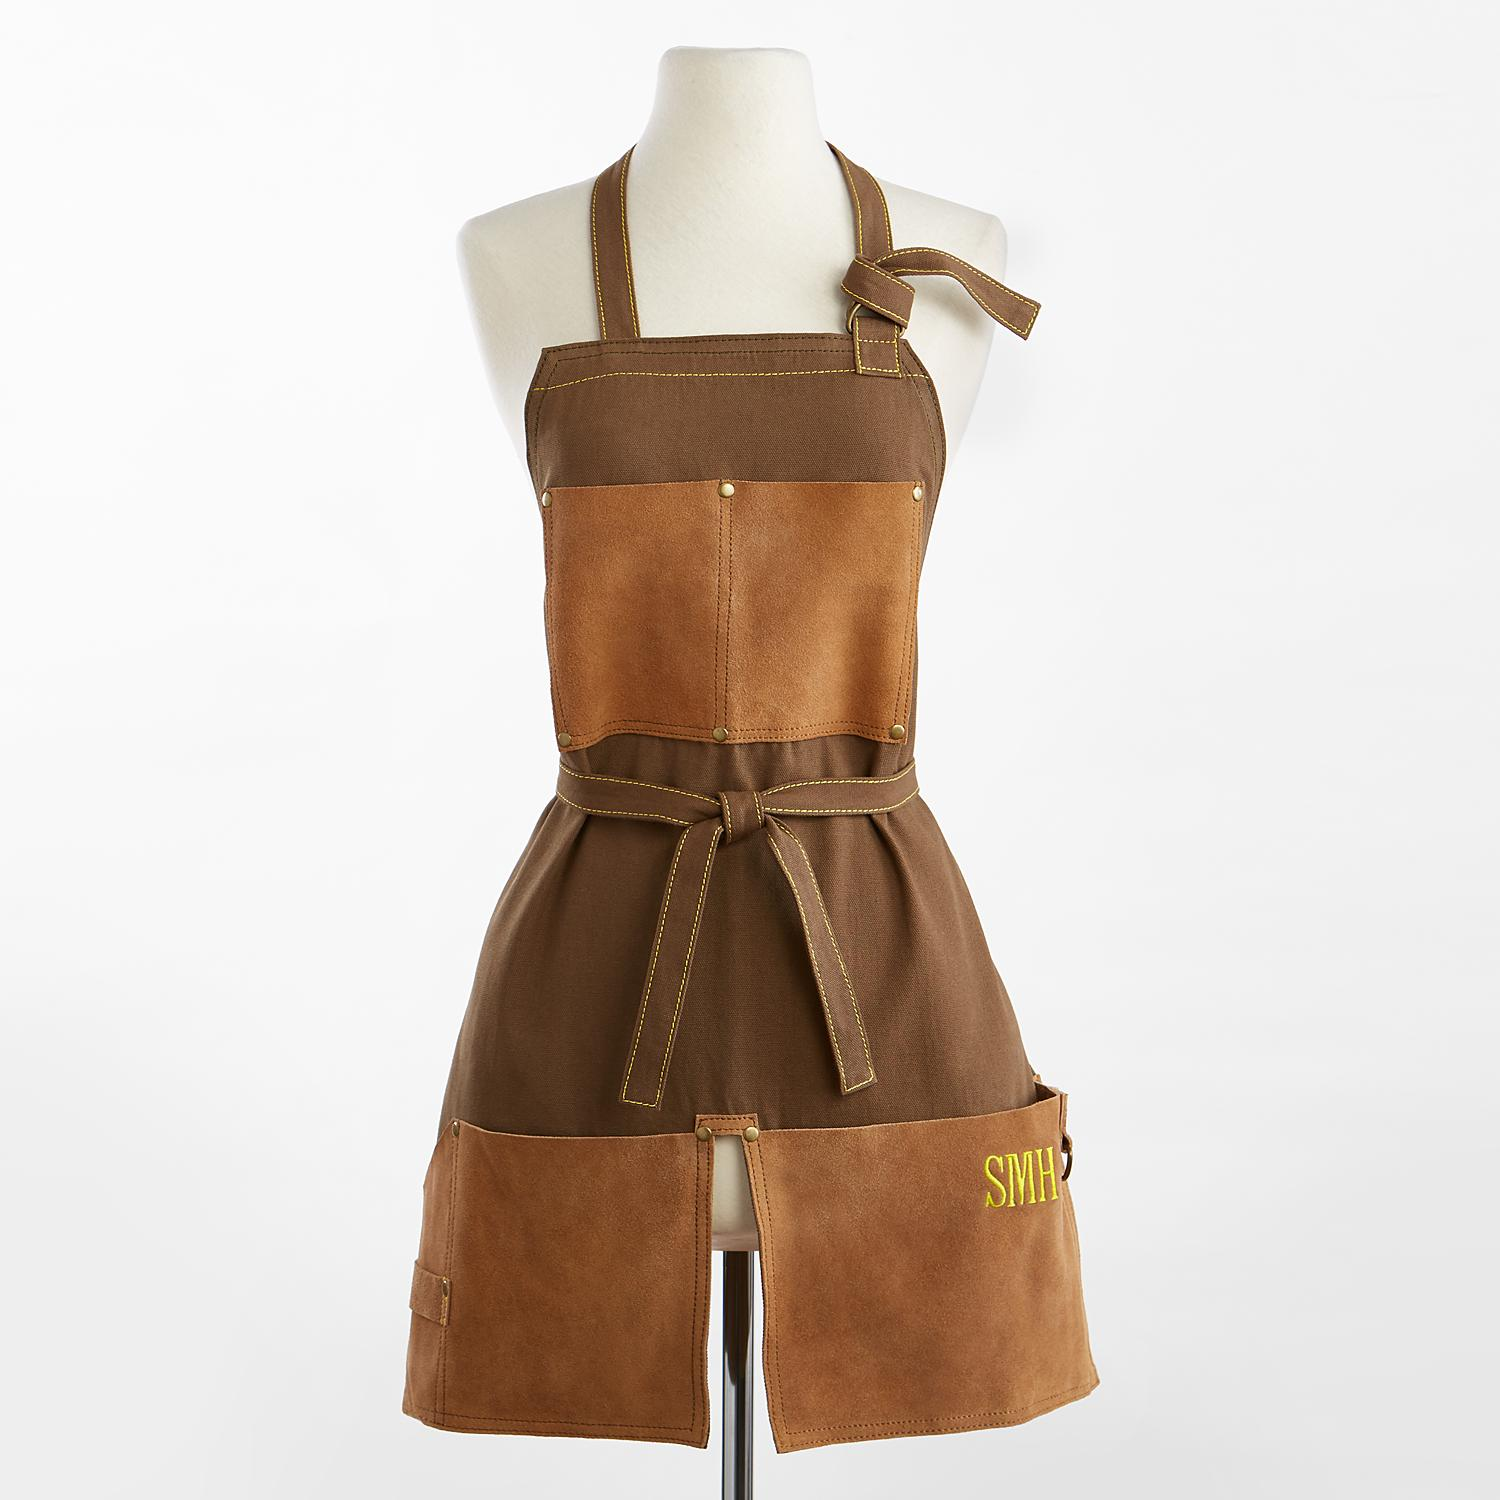 Garden apron gardening apron personalized gifts for mom